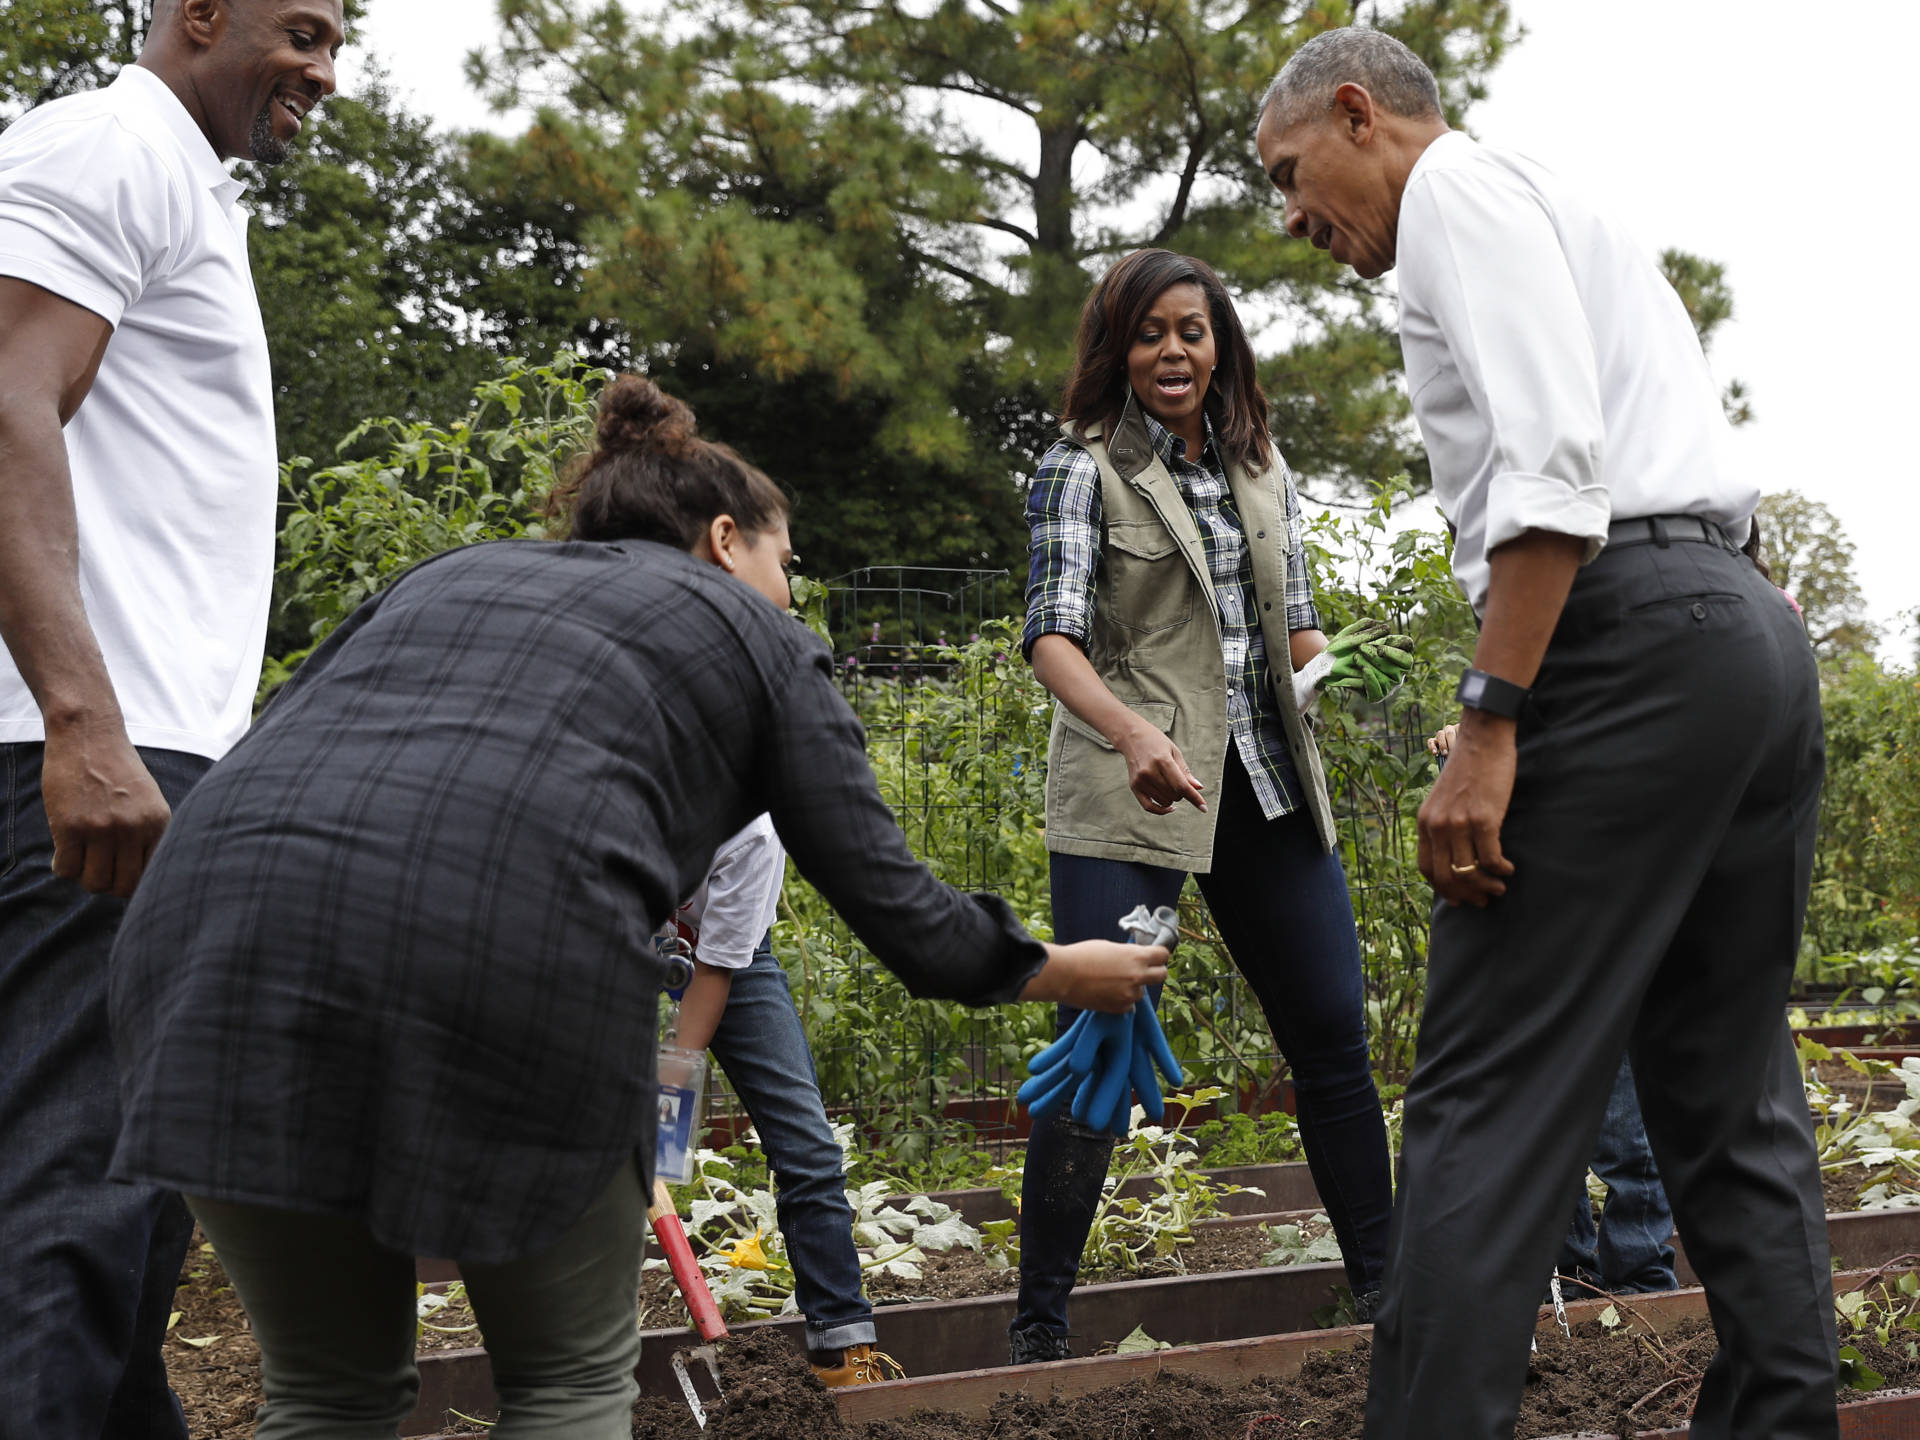 President Barack Obama is handed a pair of gardening gloves as first lady Michelle Obama, second from right, and NBA basketball player Alonzo Mourning, left, watch during the harvest of the White House Kitchen Garden on the South Lawn White House in Washington.